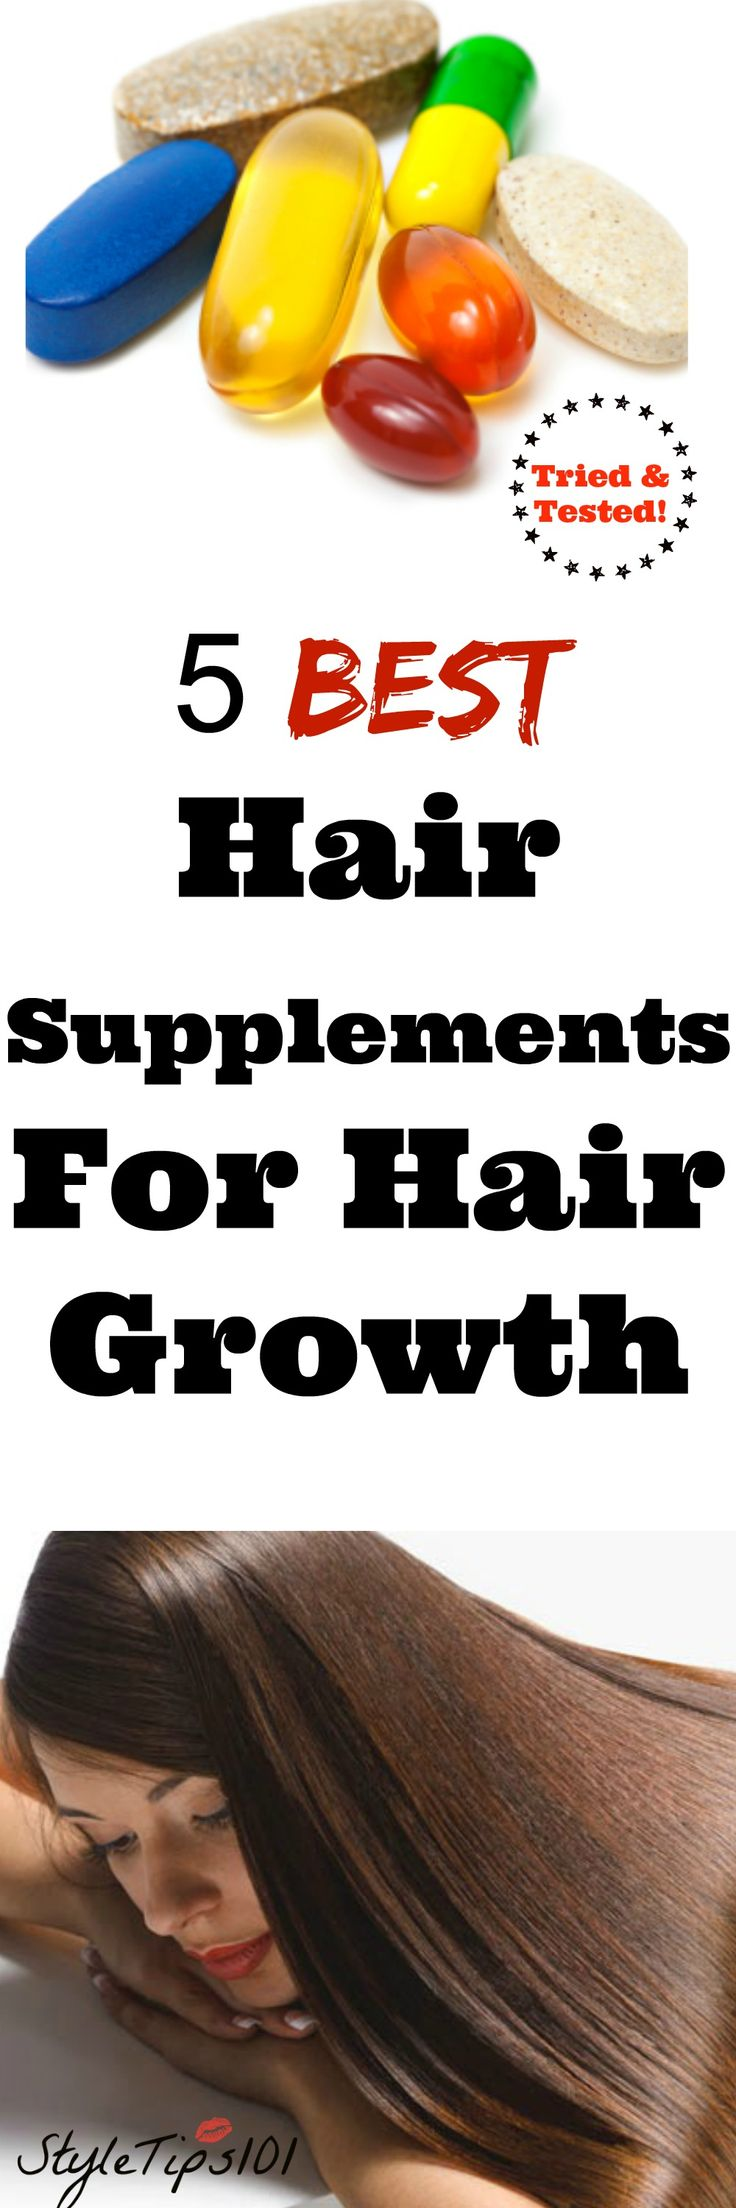 If you have thin, breaking hair that just won't grow past a certain point (like mine!), you may want to give supplements a try! These 5 best hair growth supplements work from the inside out to disperse vitamins and minerals to the hair shaft and regrow hair. These supplements have been tried and tested by… Read More »